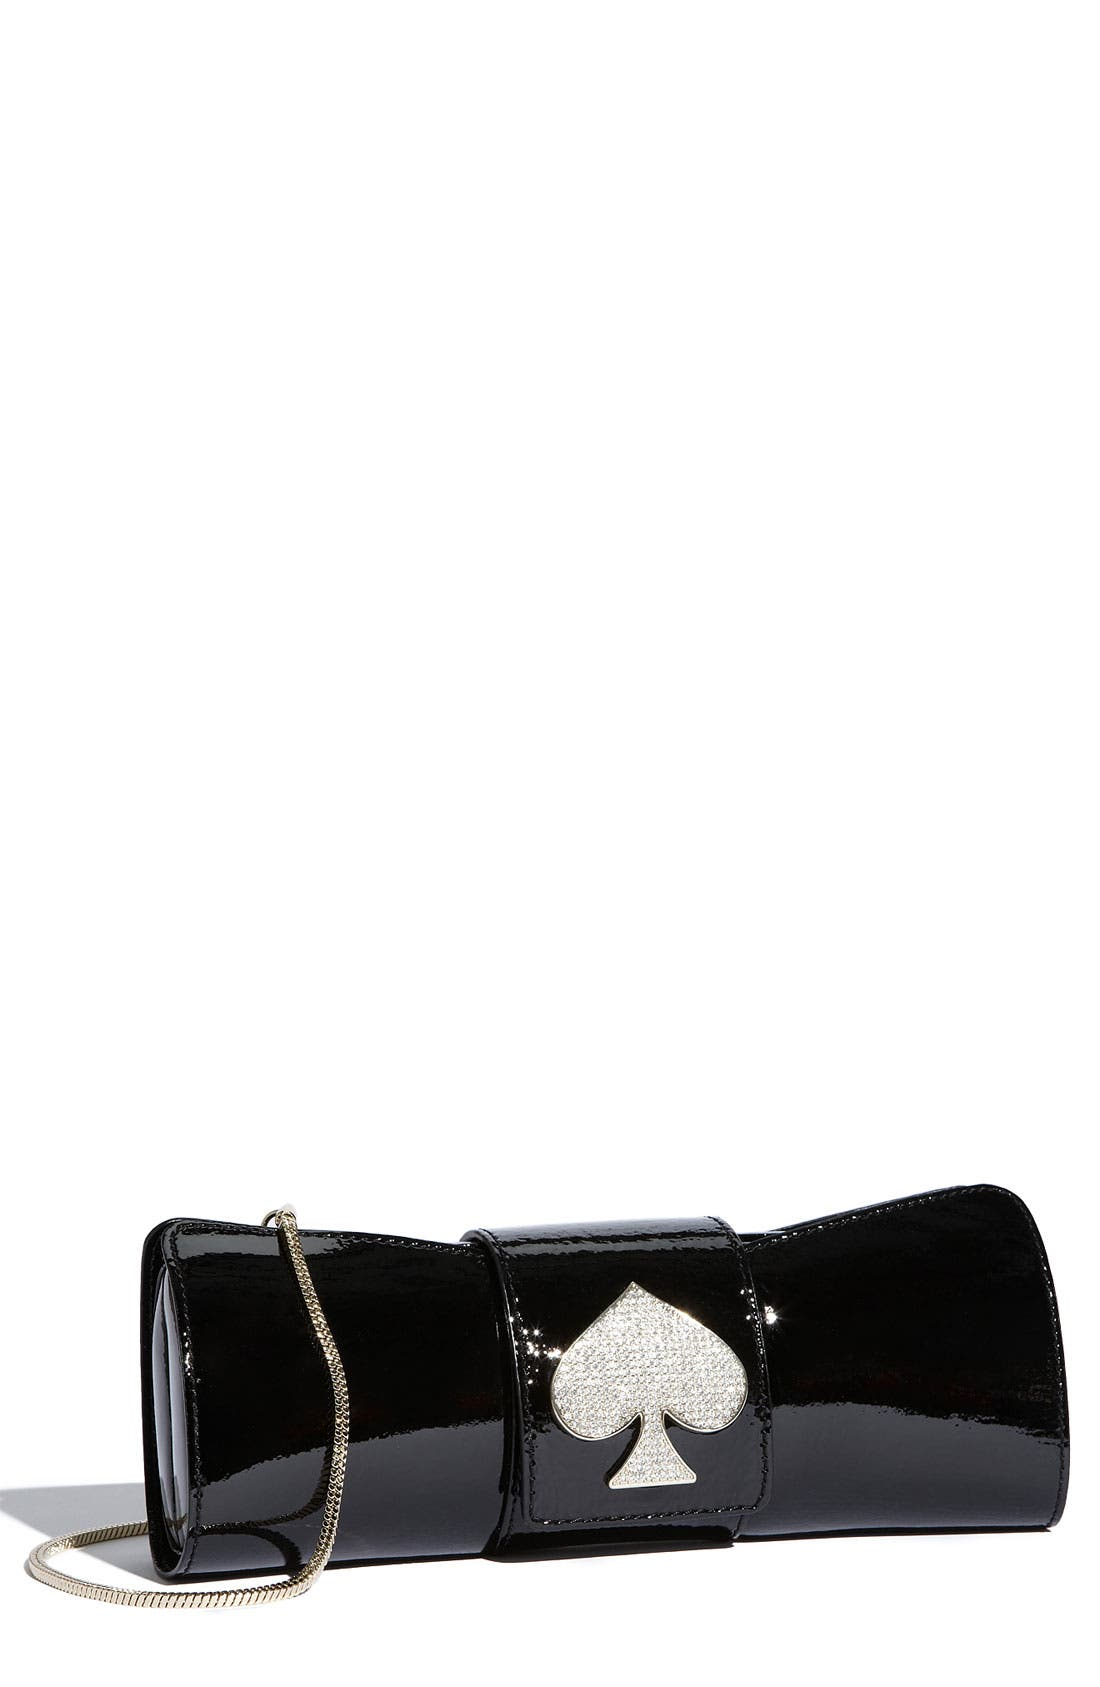 Alternate Image 1 Selected - kate spade new york 'sparkle spade bow' clutch